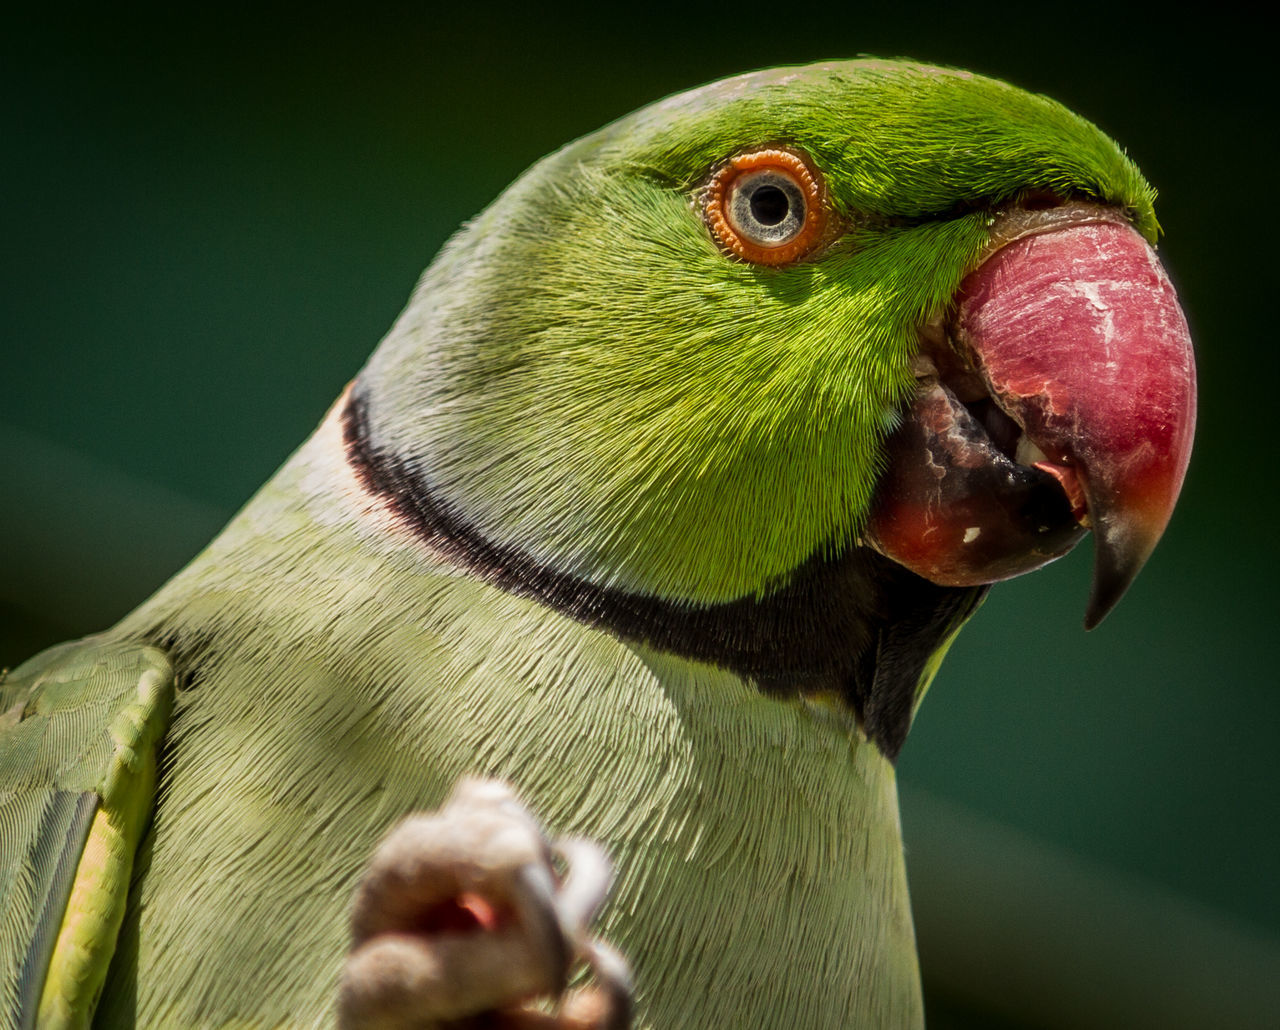 Animal Themes Animal Wildlife Animals In The Wild Beak Bird Close-up Day Green Color Nature No People One Animal Outdoors Parrot Perching